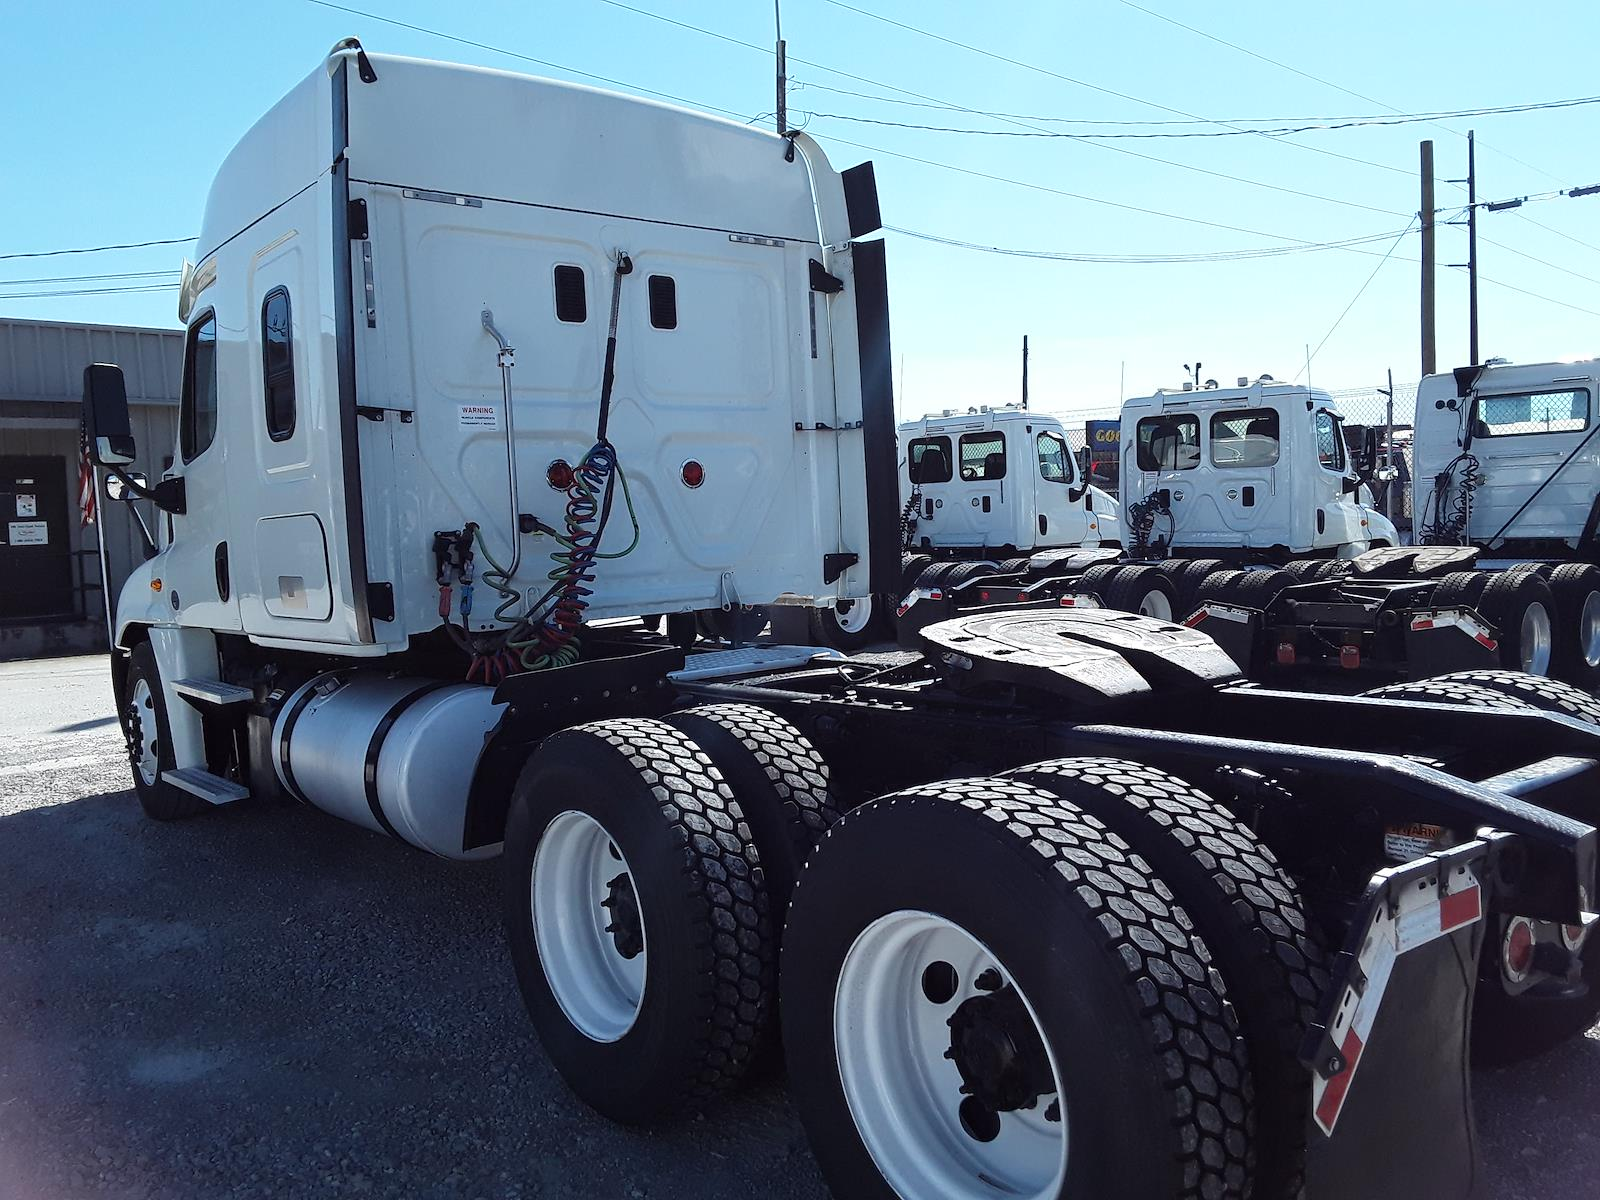 2015 Freightliner Truck, Tractor #566671 - photo 1